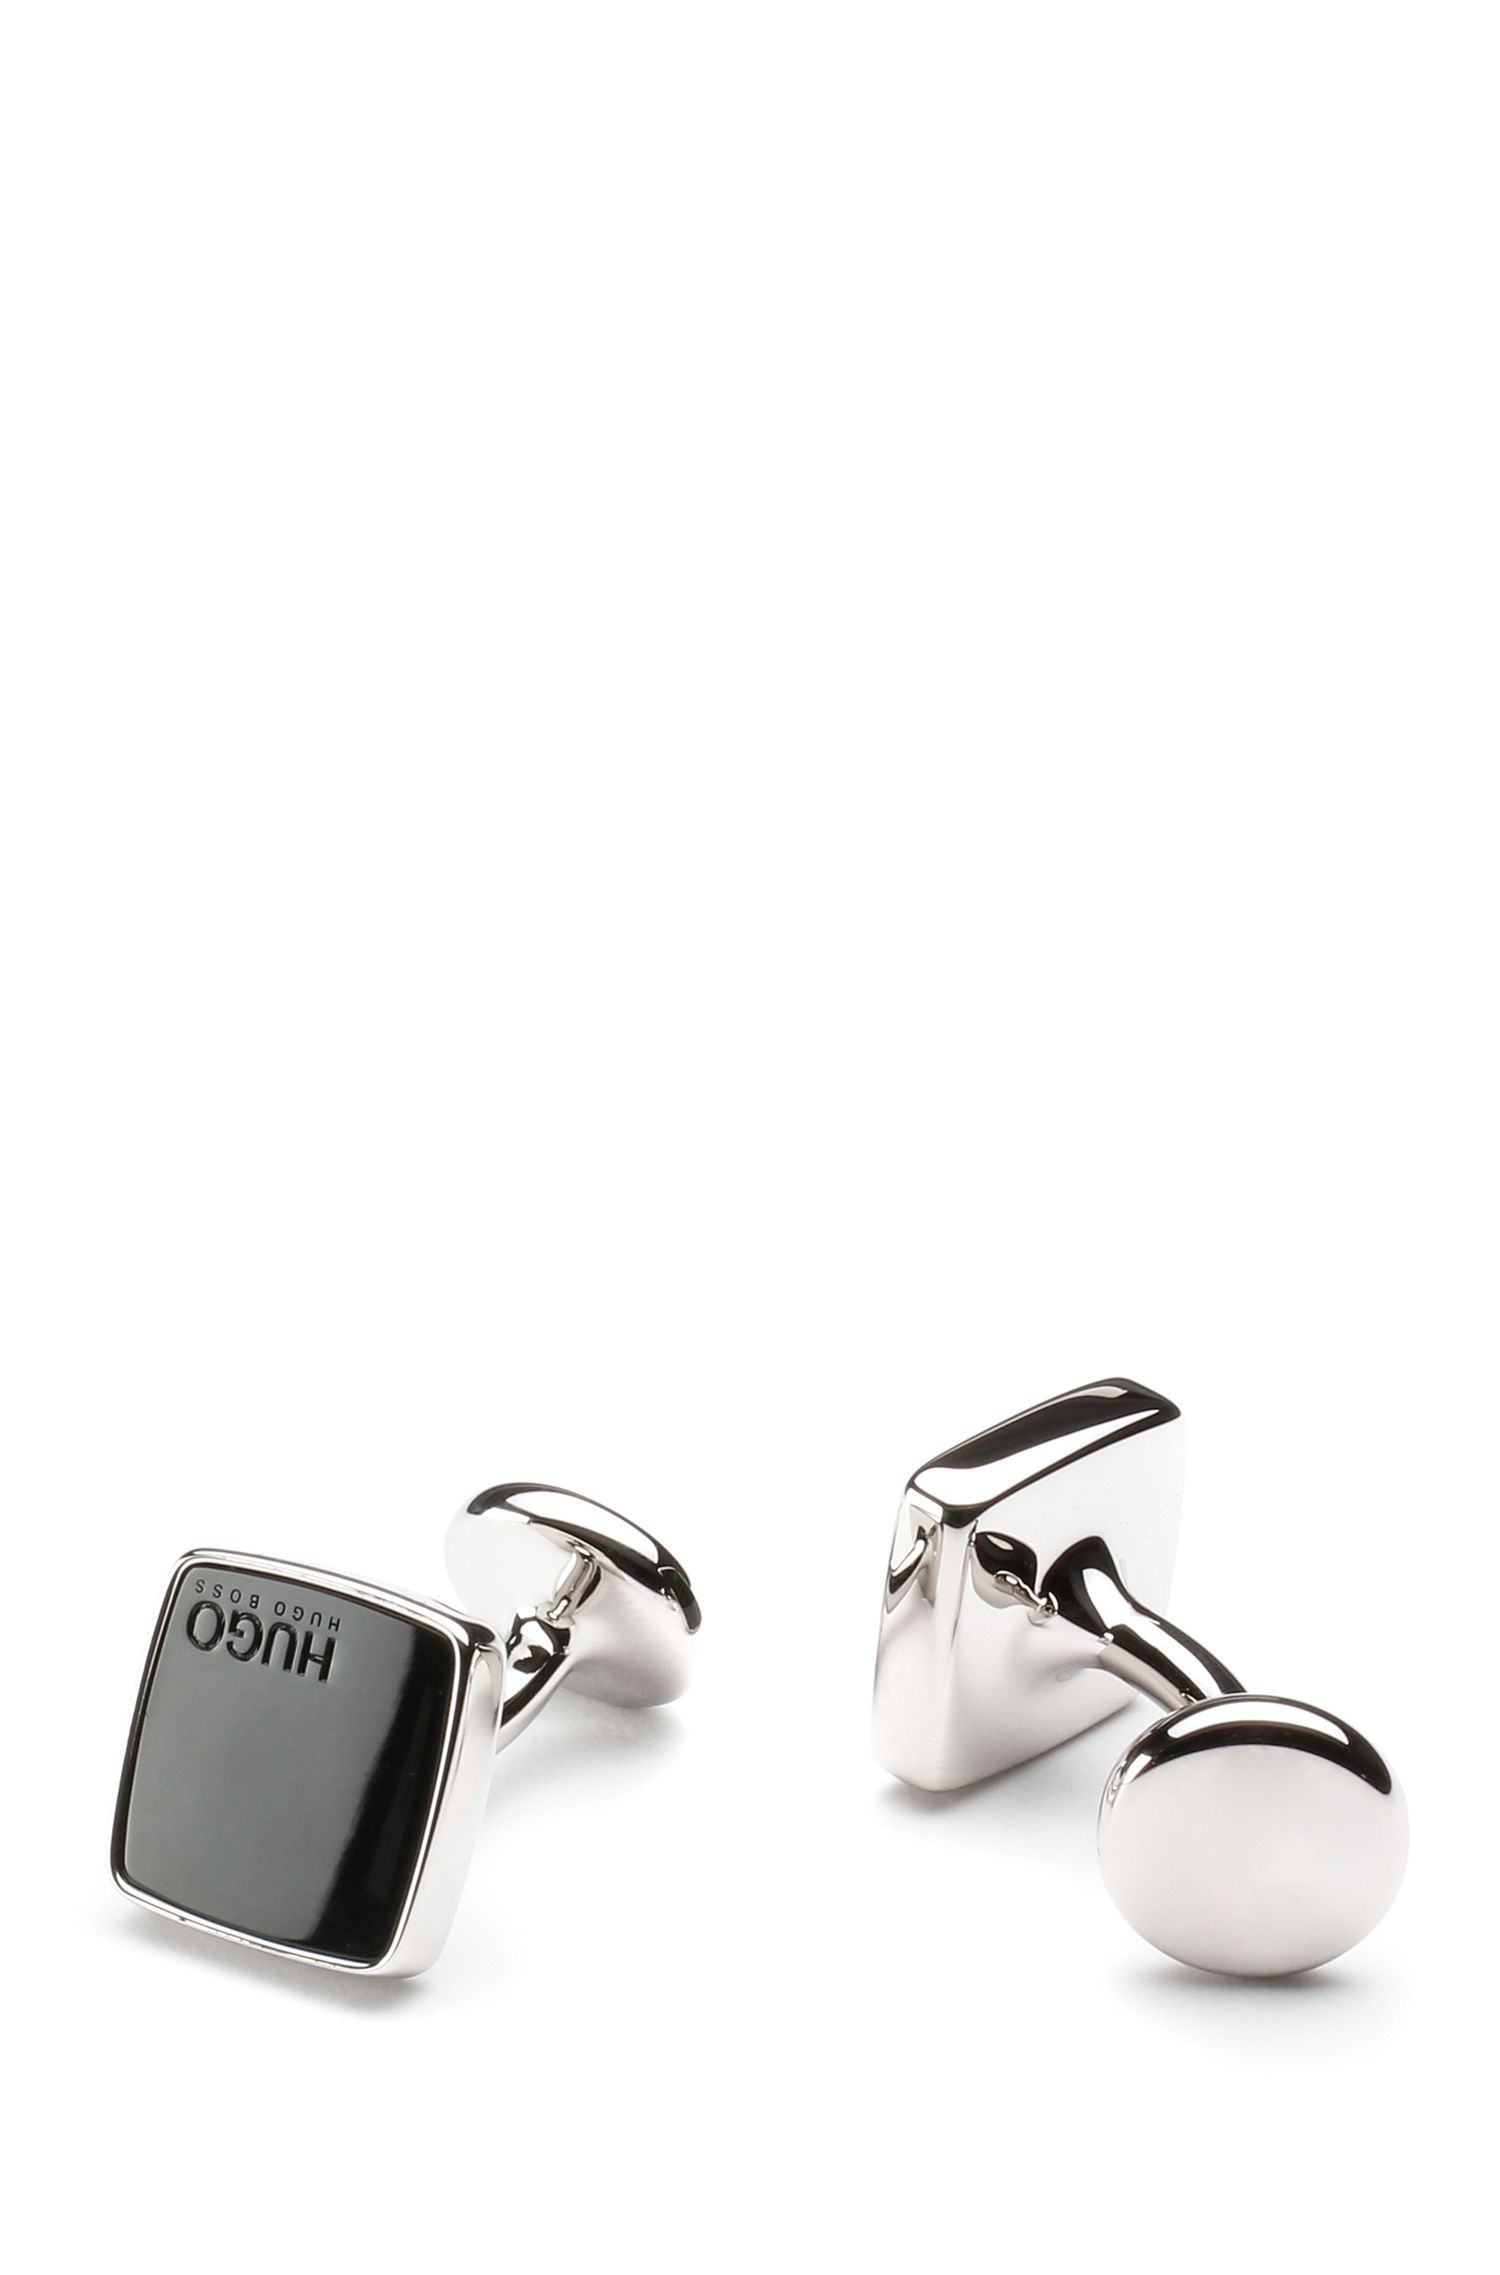 Square cufflinks with coloured enamel inserts